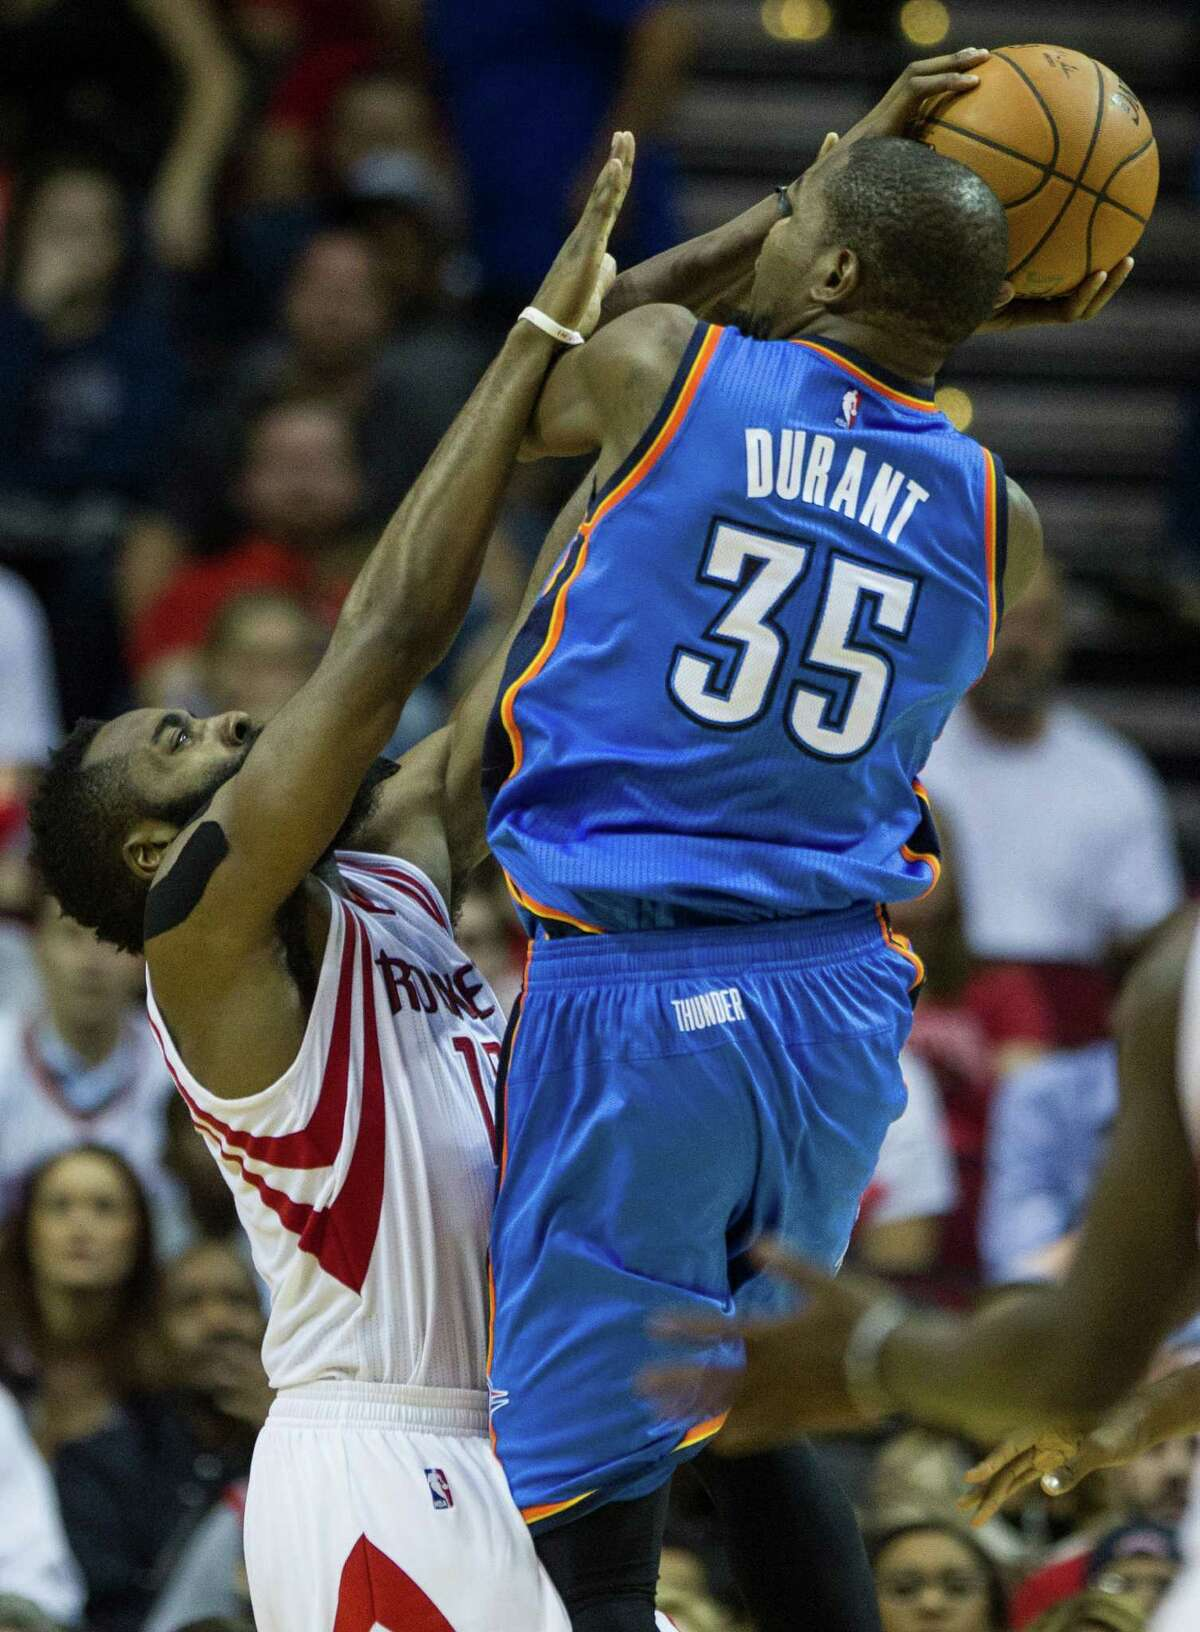 Houston Rockets guard James Harden (13) defends a shot by Oklahoma City Thunder forward Kevin Durant (35) during the second half of an NBA basketball game at Toyota Center Monday, Nov. 2, 2015, in Houston. The Rockets beat the Thunder 110-105. ( Brett Coomer / Houston Chronicle )